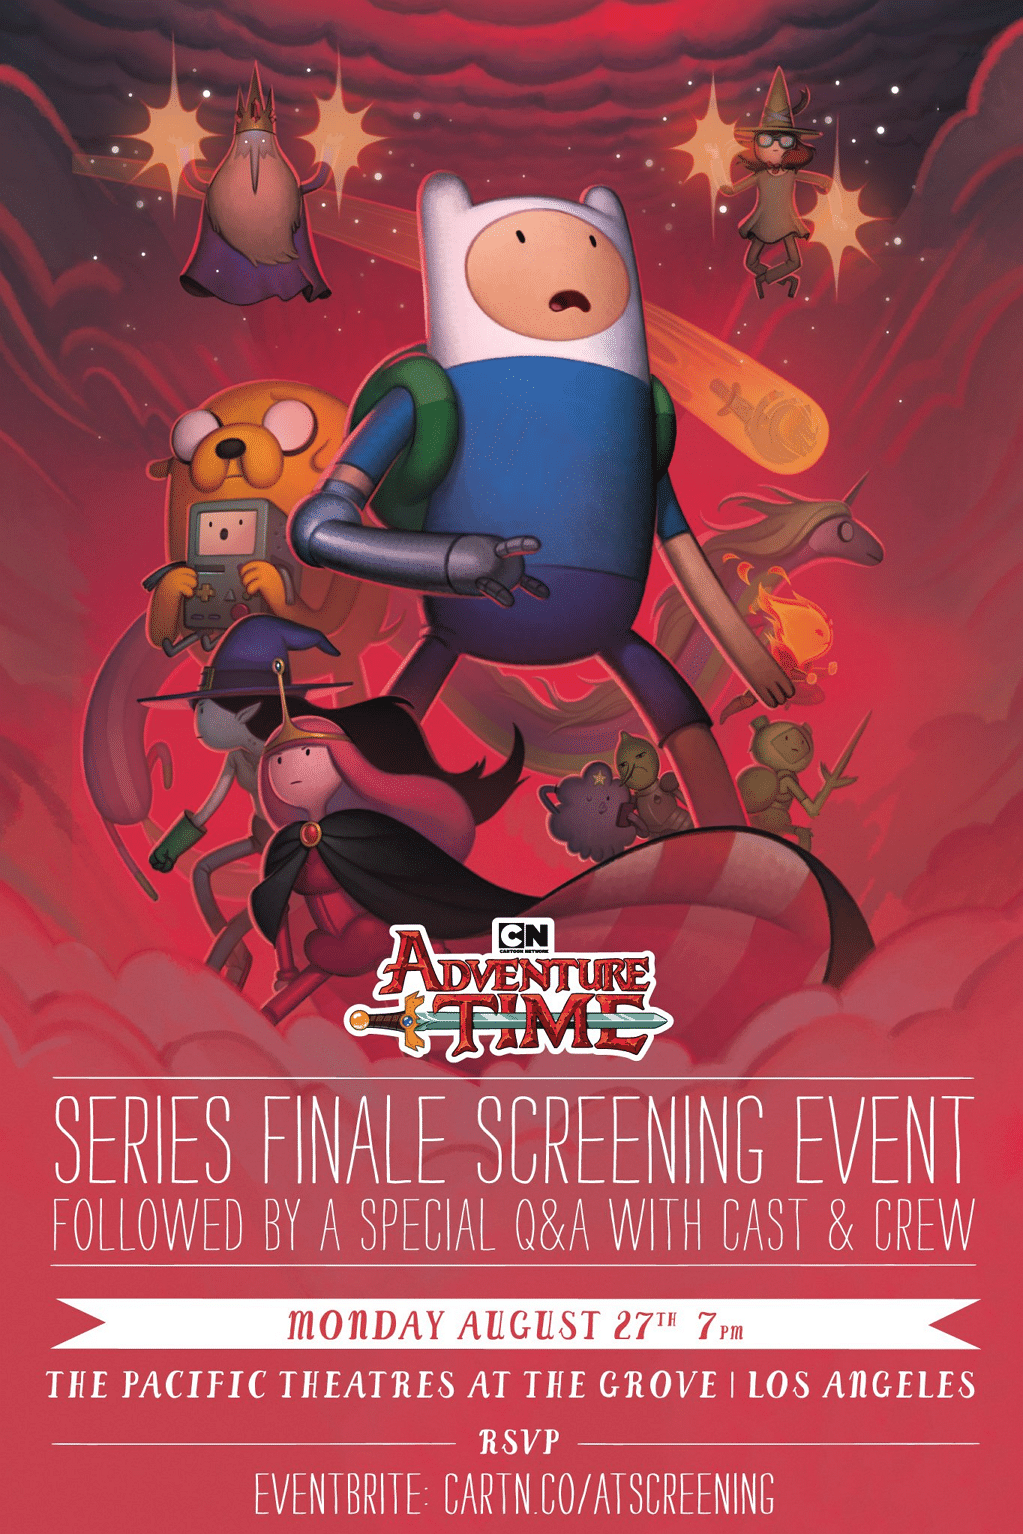 Adventure Time Series Finale Screening In Los Angeles On 27th August